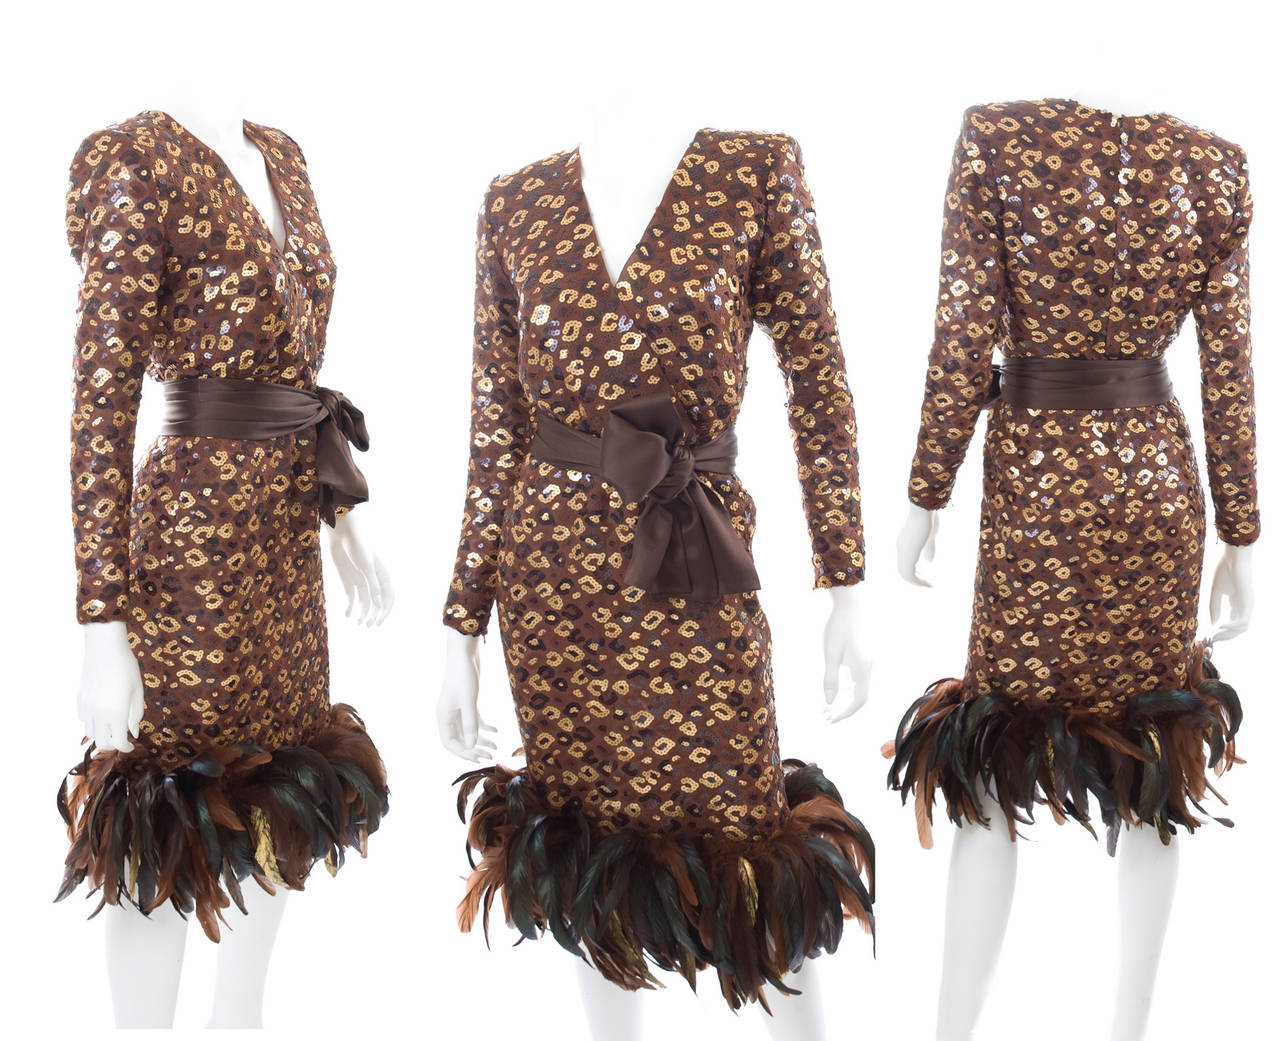 1986 Givenchy Dress with Sequins and Feathers 2